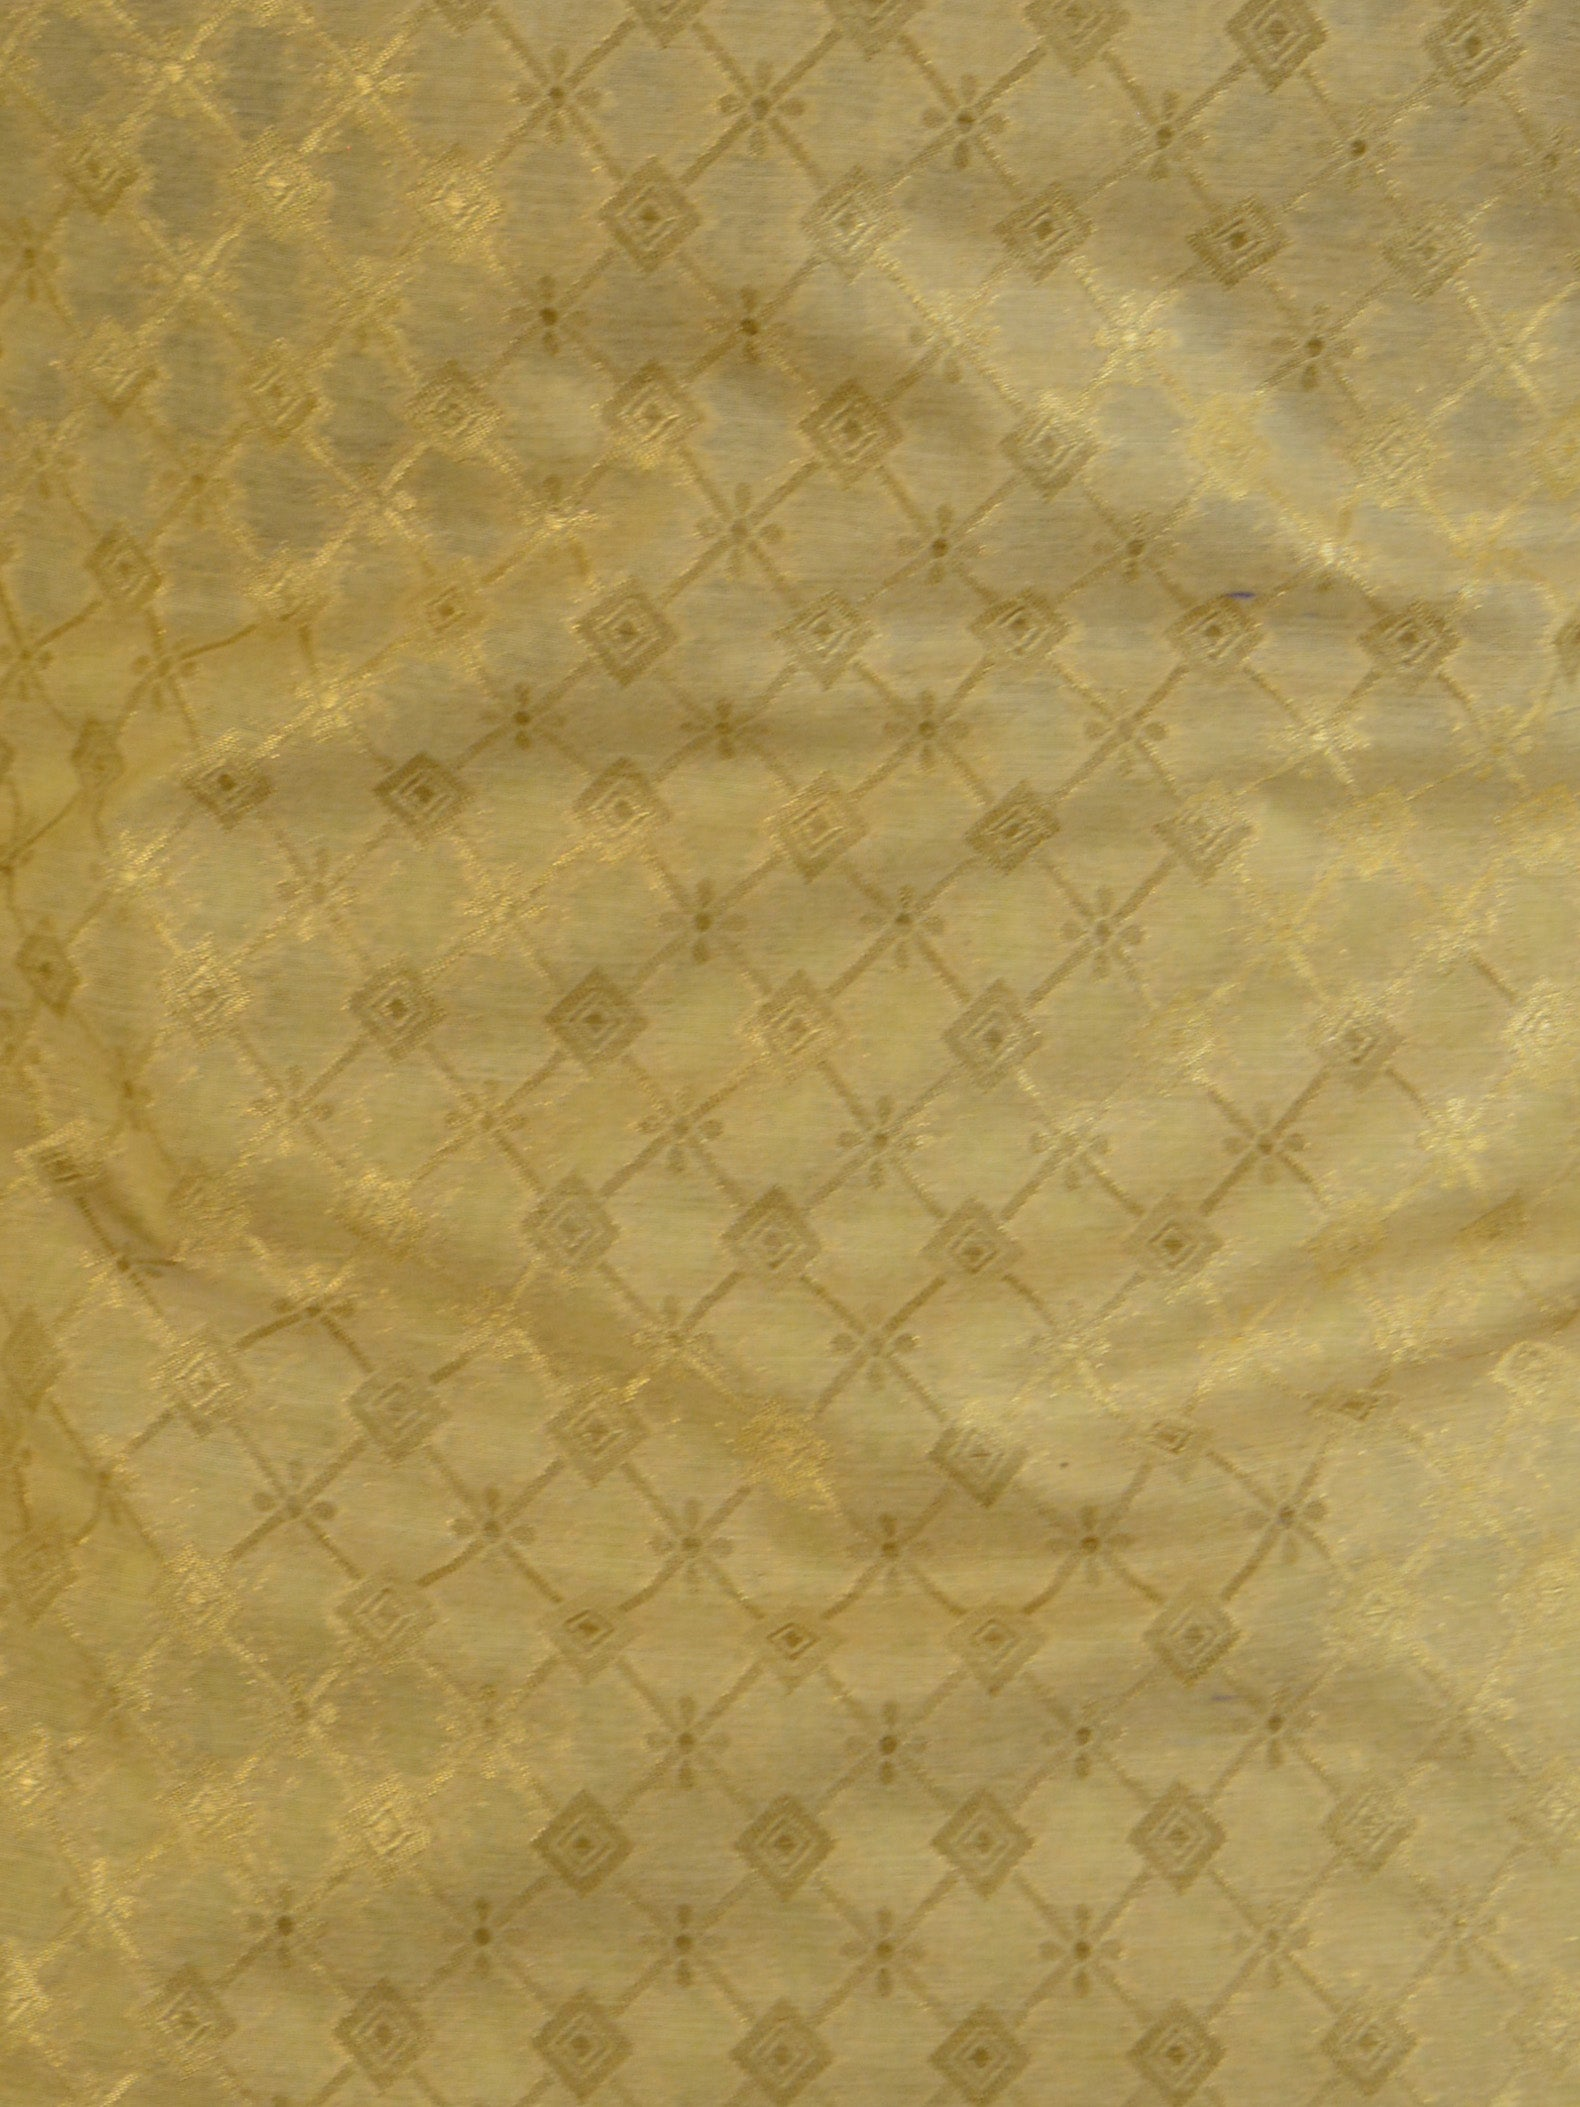 Banarasee Handloom Chanderi Salwar Kameez Fabric With Dupatta-Beige